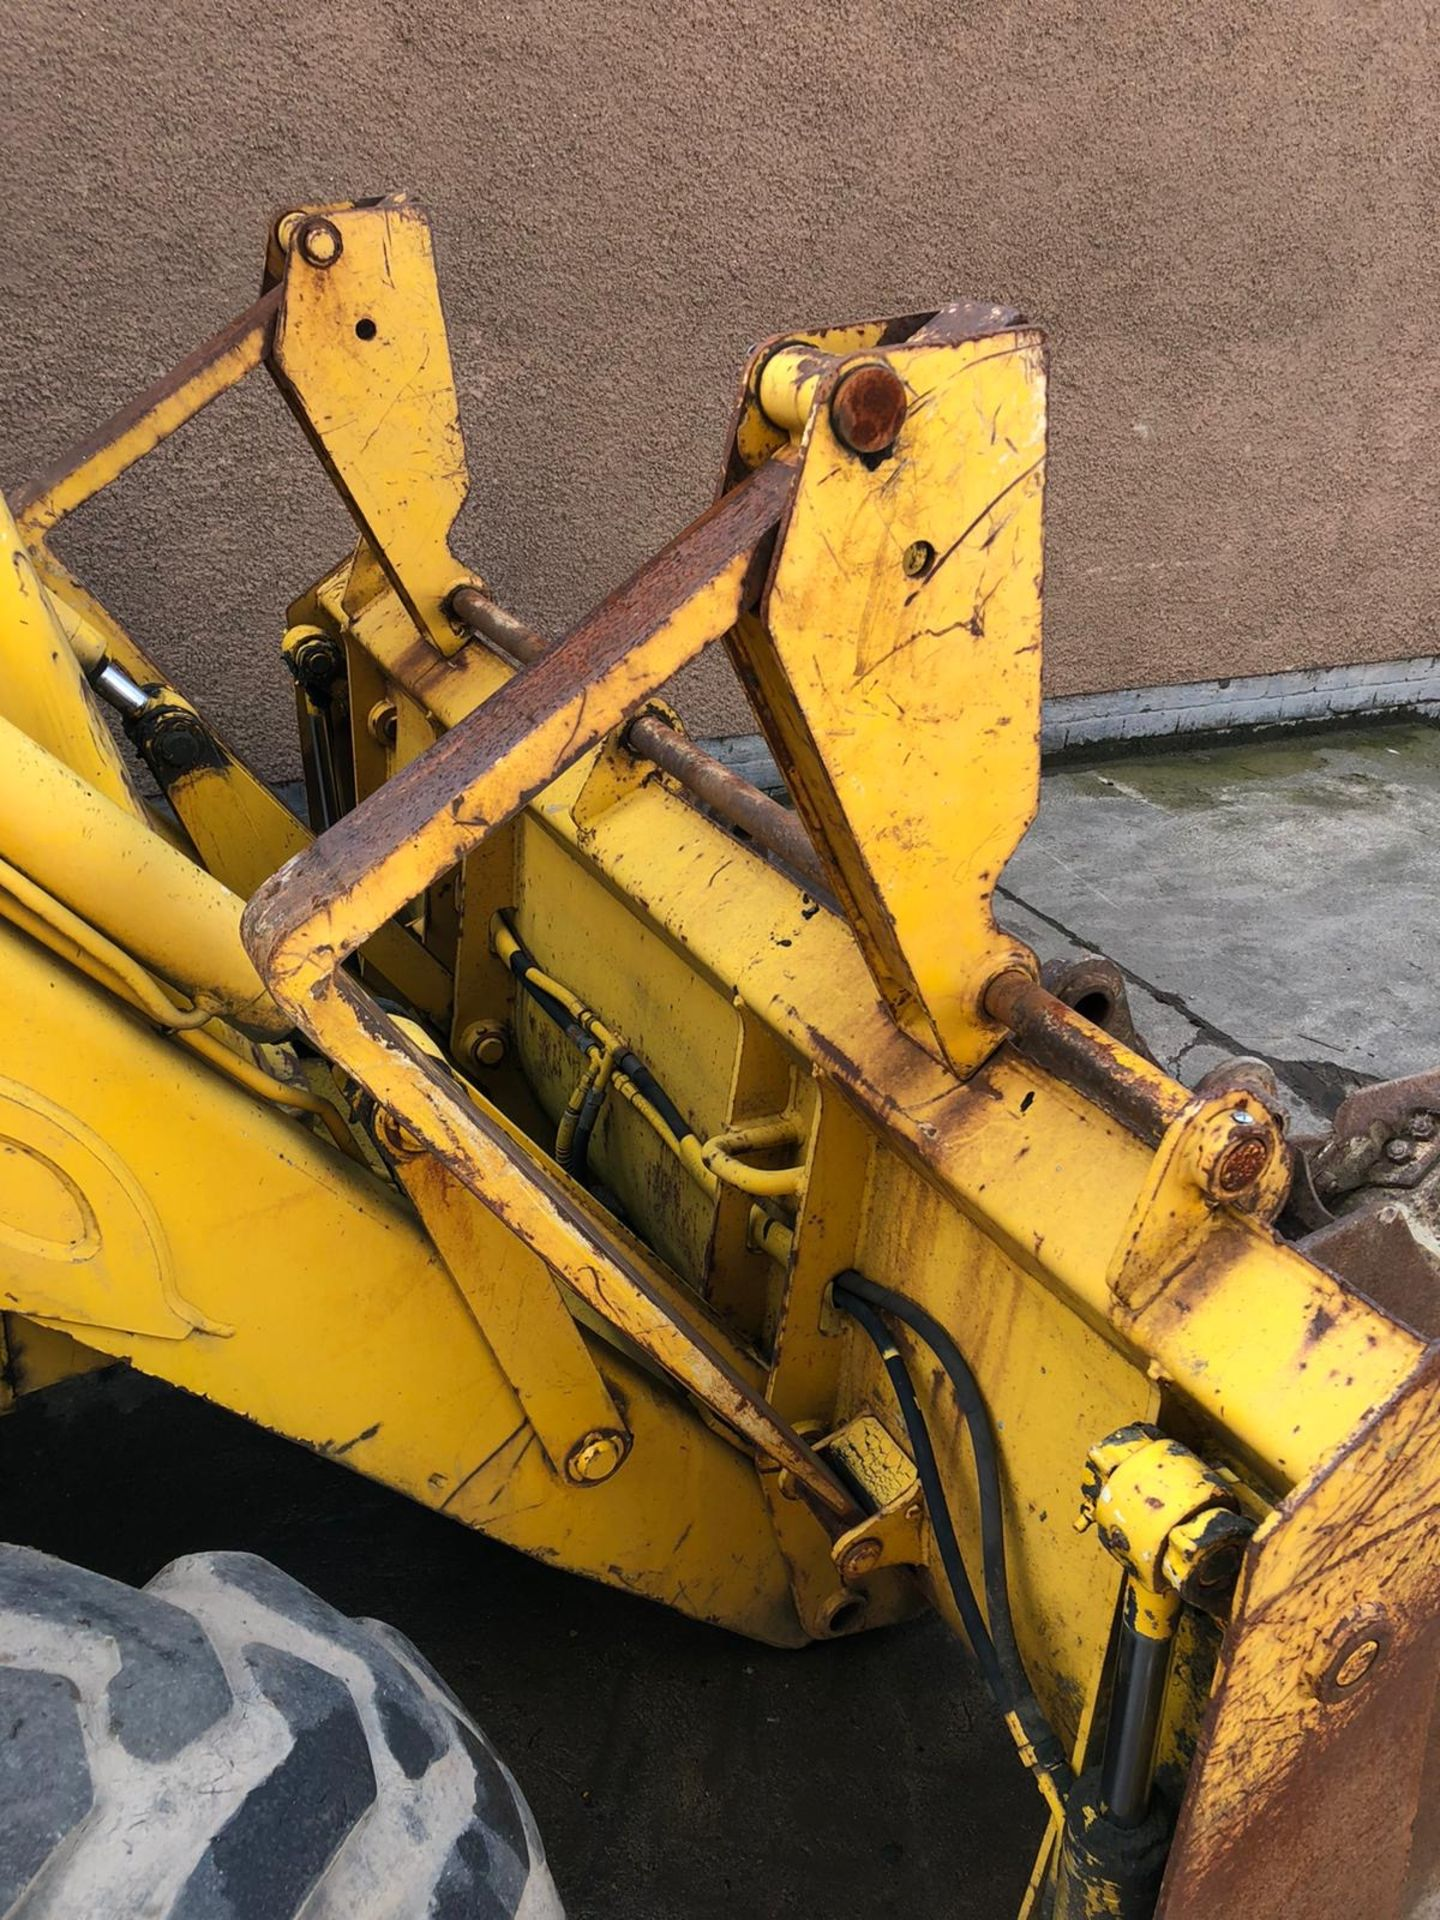 JCB 3CX PROJECT 8 DIGGER, 4X4, EXTRA DIG, C/W 3 BUCKETS, HOURS FROM NEW 7434 ONLY *NO VAT* - Image 10 of 16